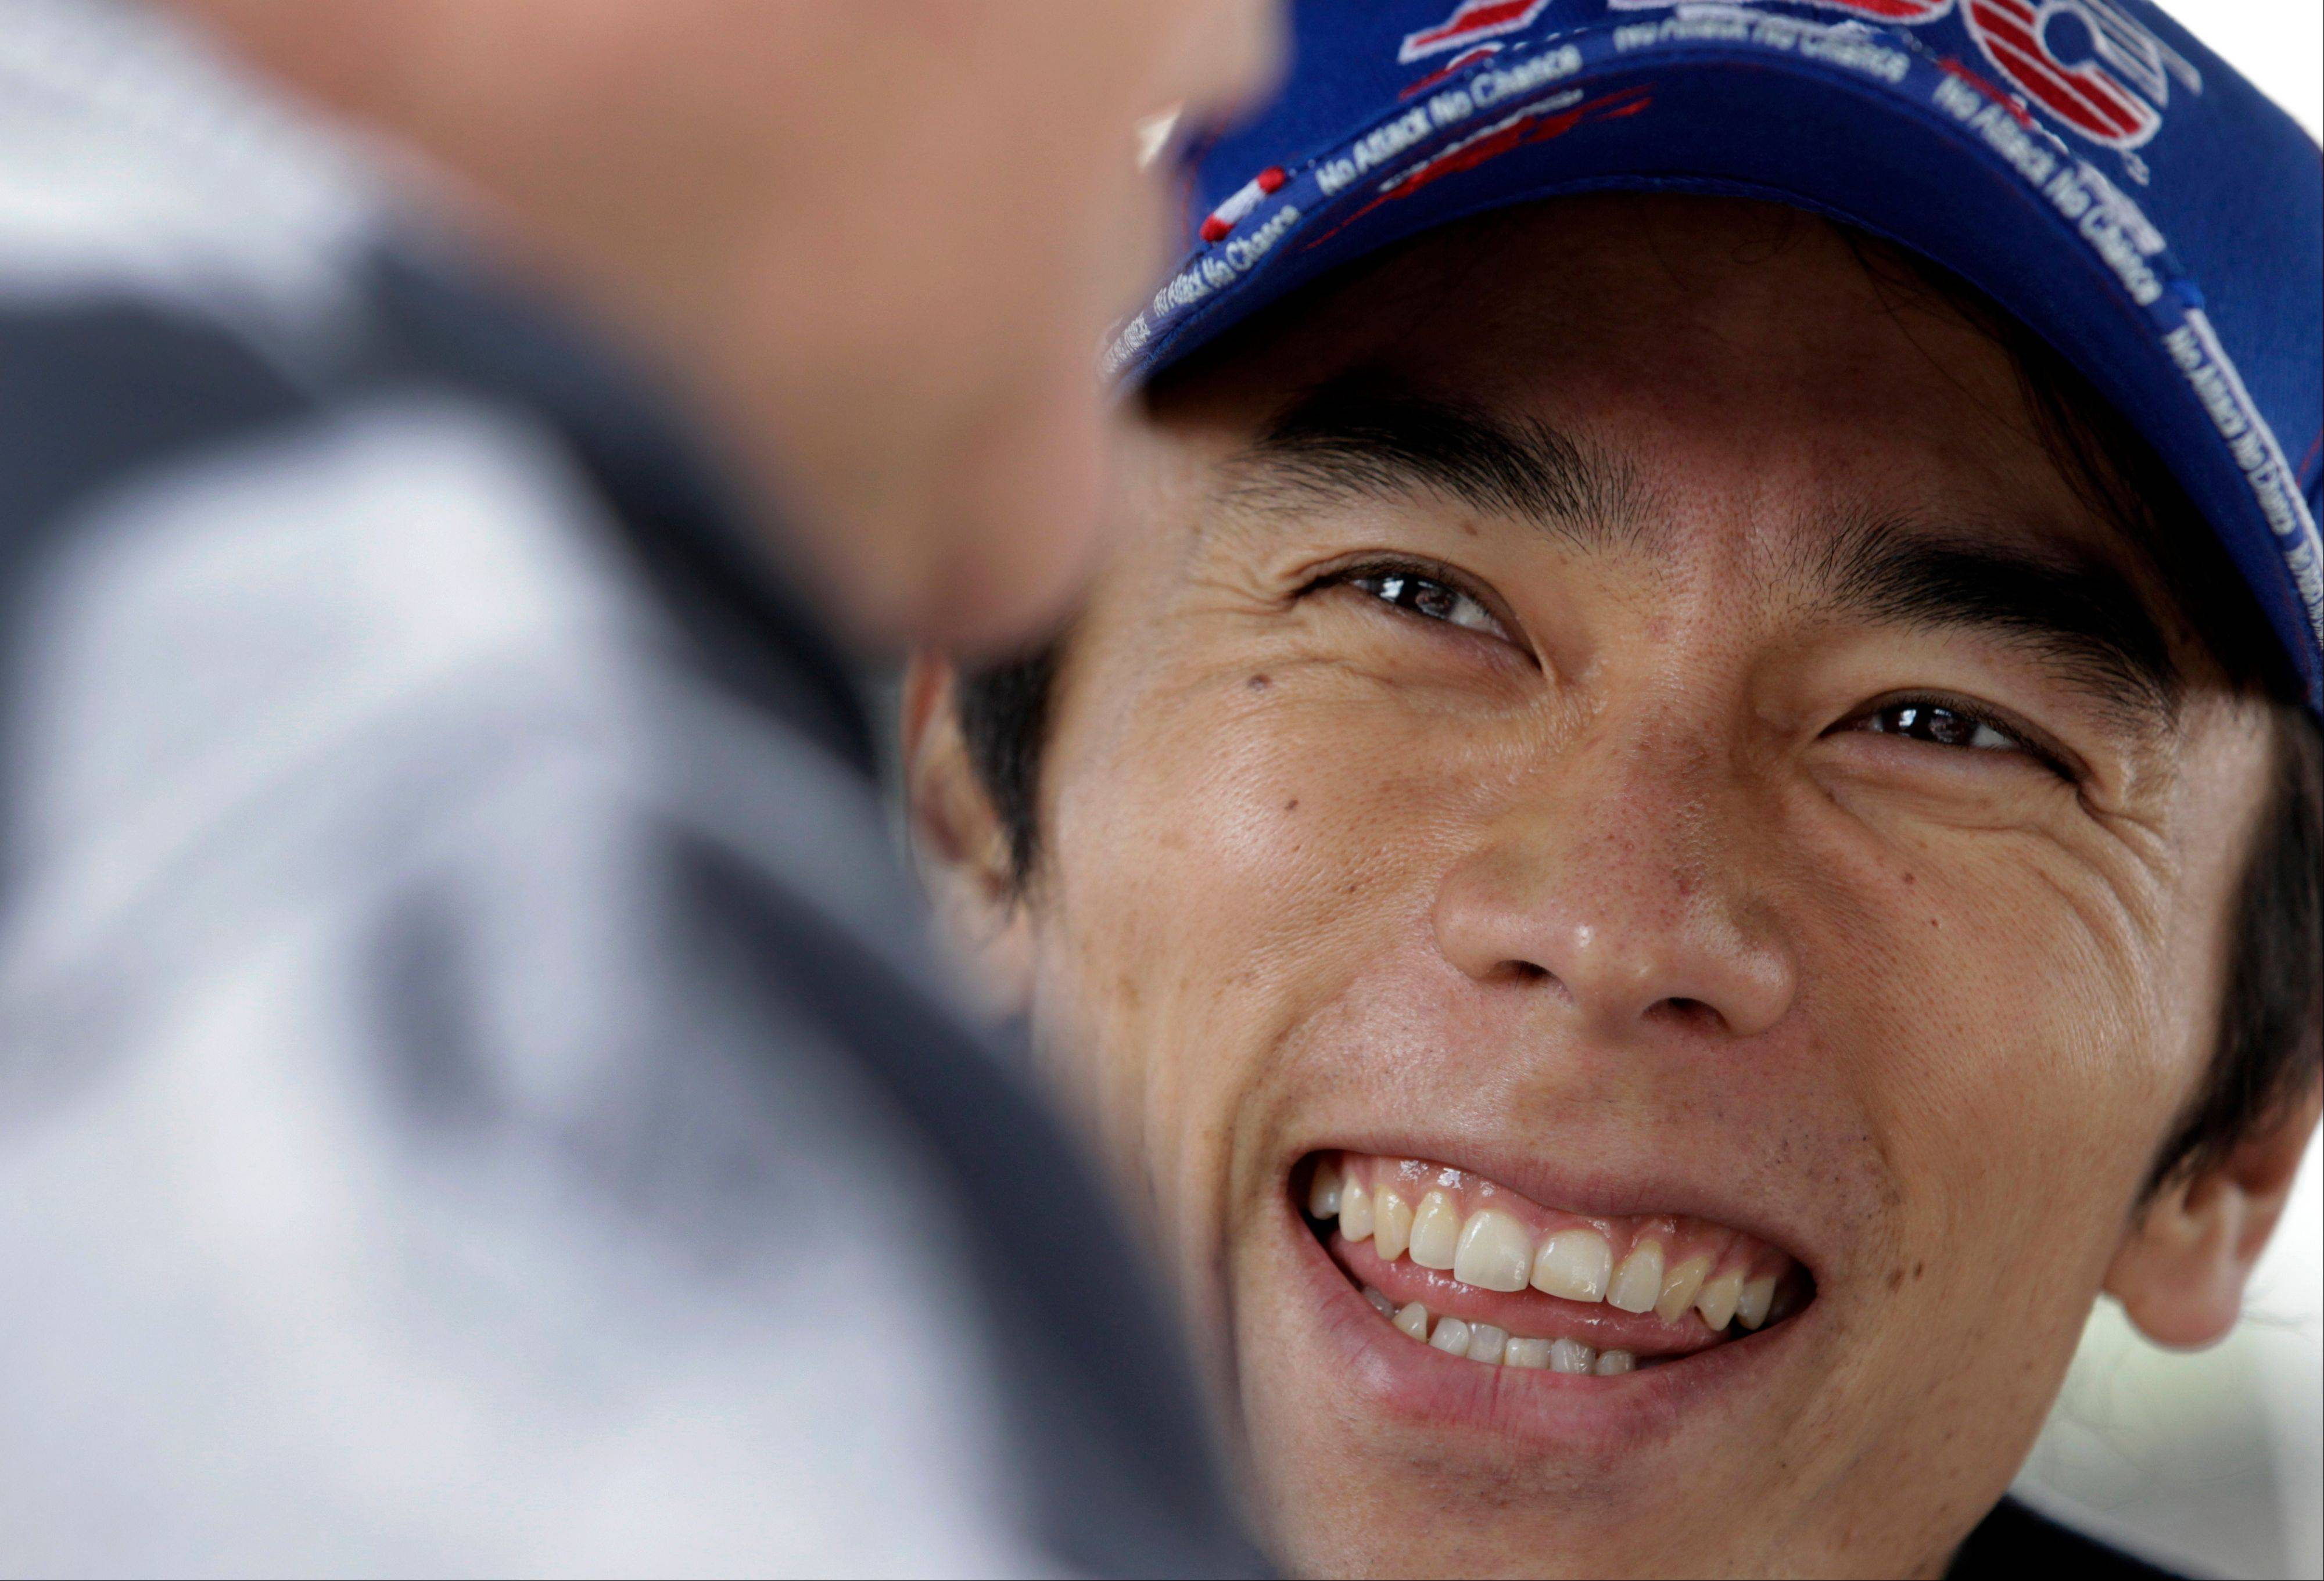 IndyCar driver Takuma Sato, of Japan, laughs as he talks with a member of his crew before the start of the final practice session for the Indianapolis 500 auto race at the Indianapolis Motor Speedway in Indianapolis, Friday, May 24, 2013.